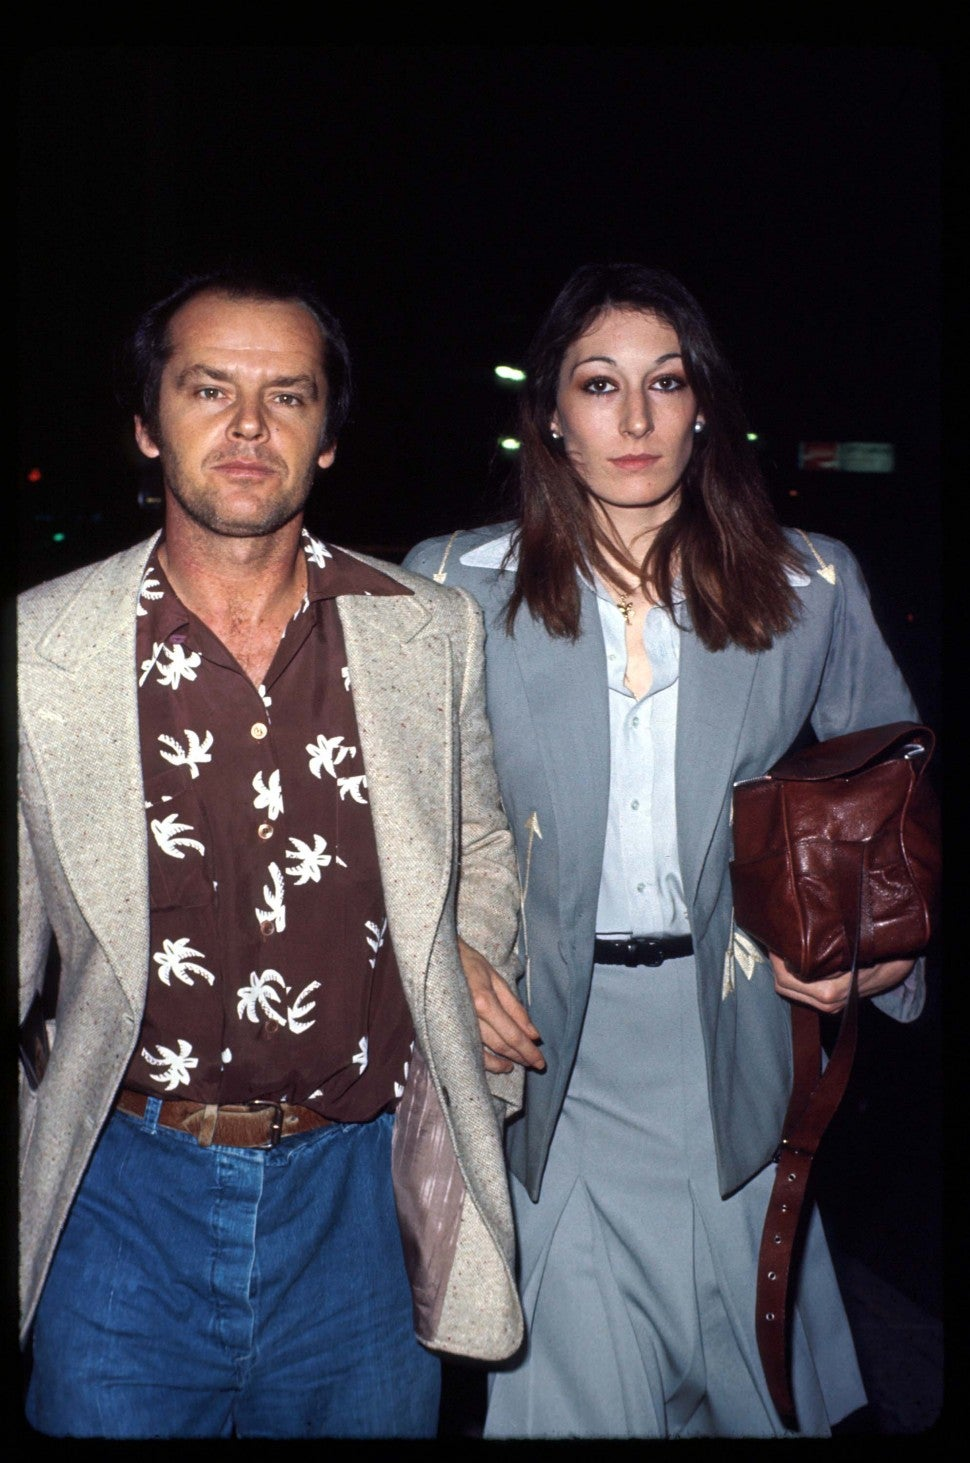 Anjelica Huston Shares A Nsfw Admission About Ex Jack Nicholson Entertainment Tonight She is busy bringing up her little brother, marc, and has an intense relationship with her father, christian. nsfw admission about ex jack nicholson